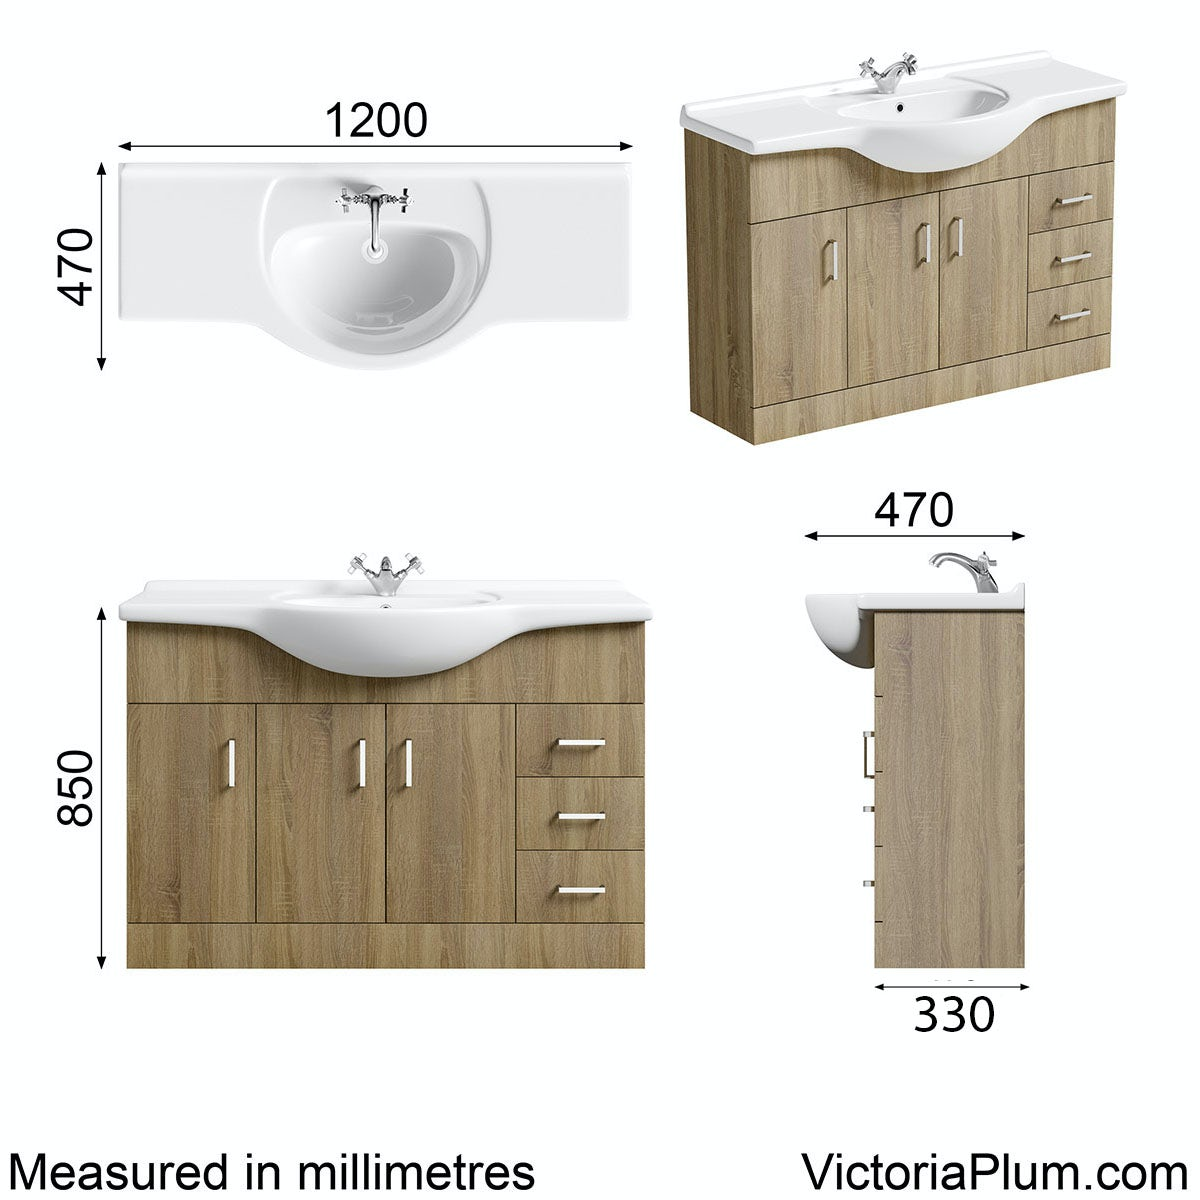 Dimensions for Orchard Eden oak vanity unit and basin 1200mm